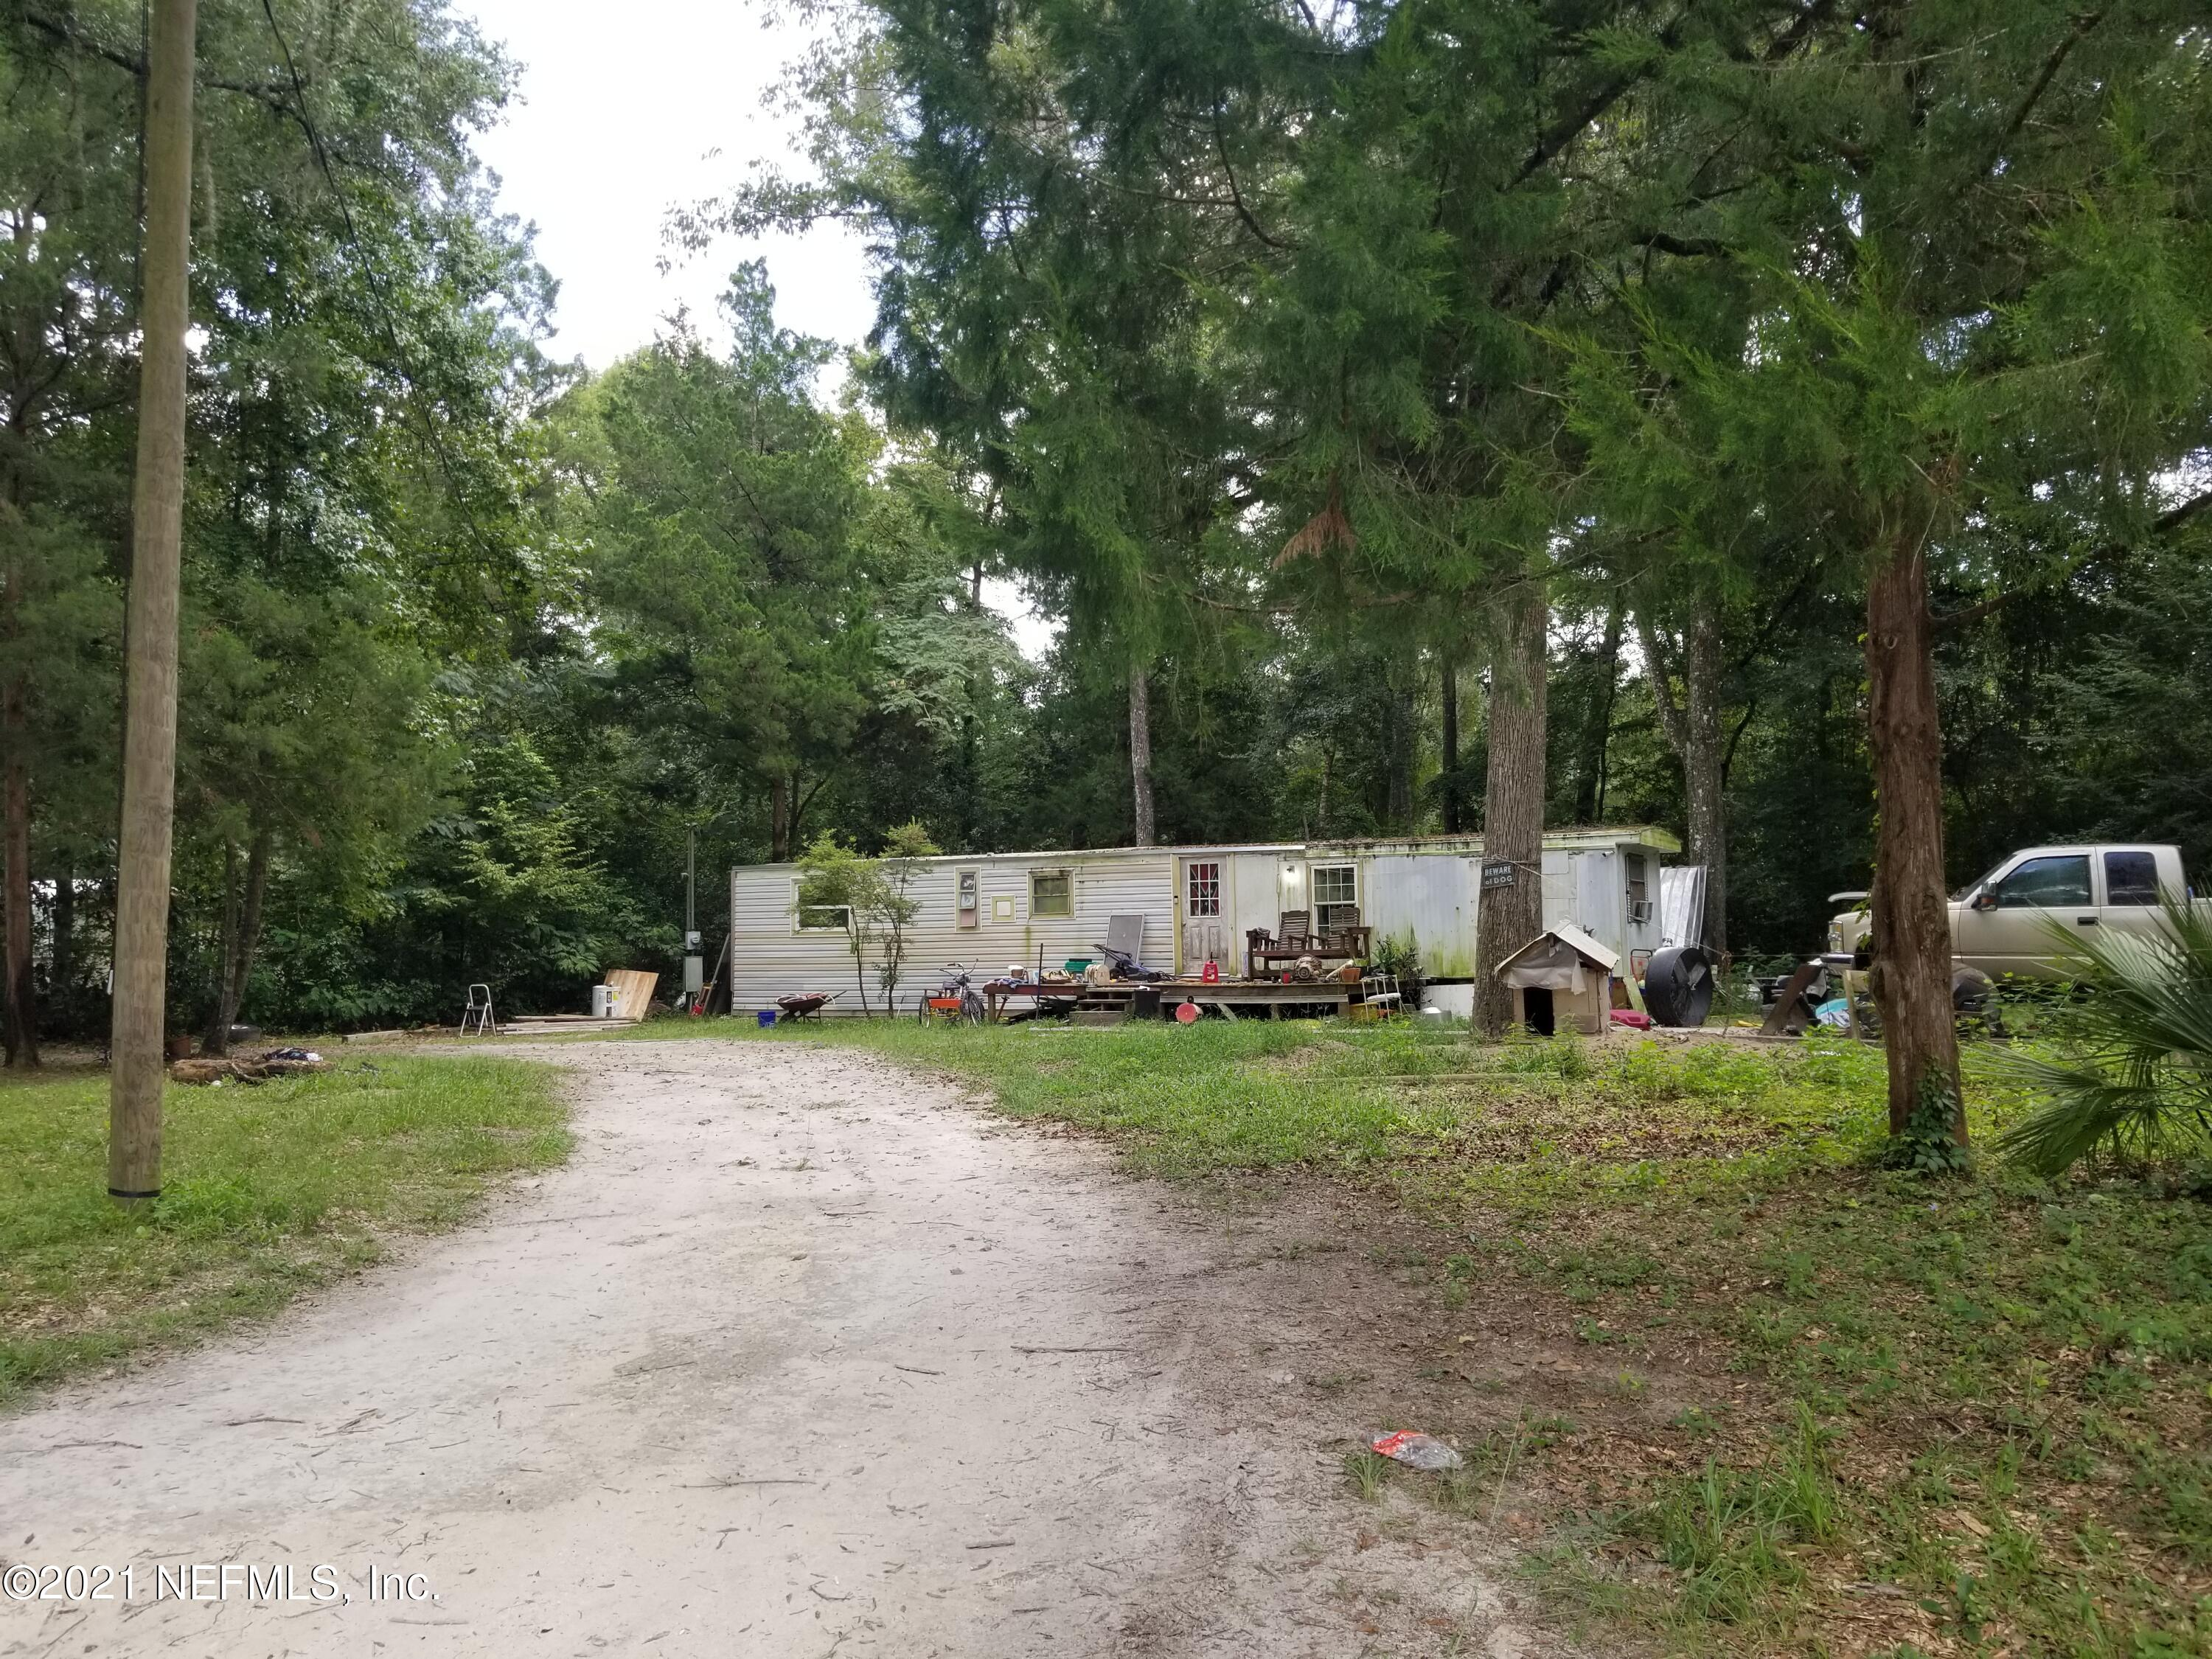 Located just 2 miles from downtown Fort White and 5 minutes to High Springs in Columbia County. This 2br/1ba mobile home sits on a  1/2 acre lot that is walking distance to the Santa Fe River with direct private ramp  access. This property is NOT located within a flood zone. Come enjoy wonderful neighbors and world renowned springs and rivers! The adjacent property (268 SW Memorial Dr is also available).